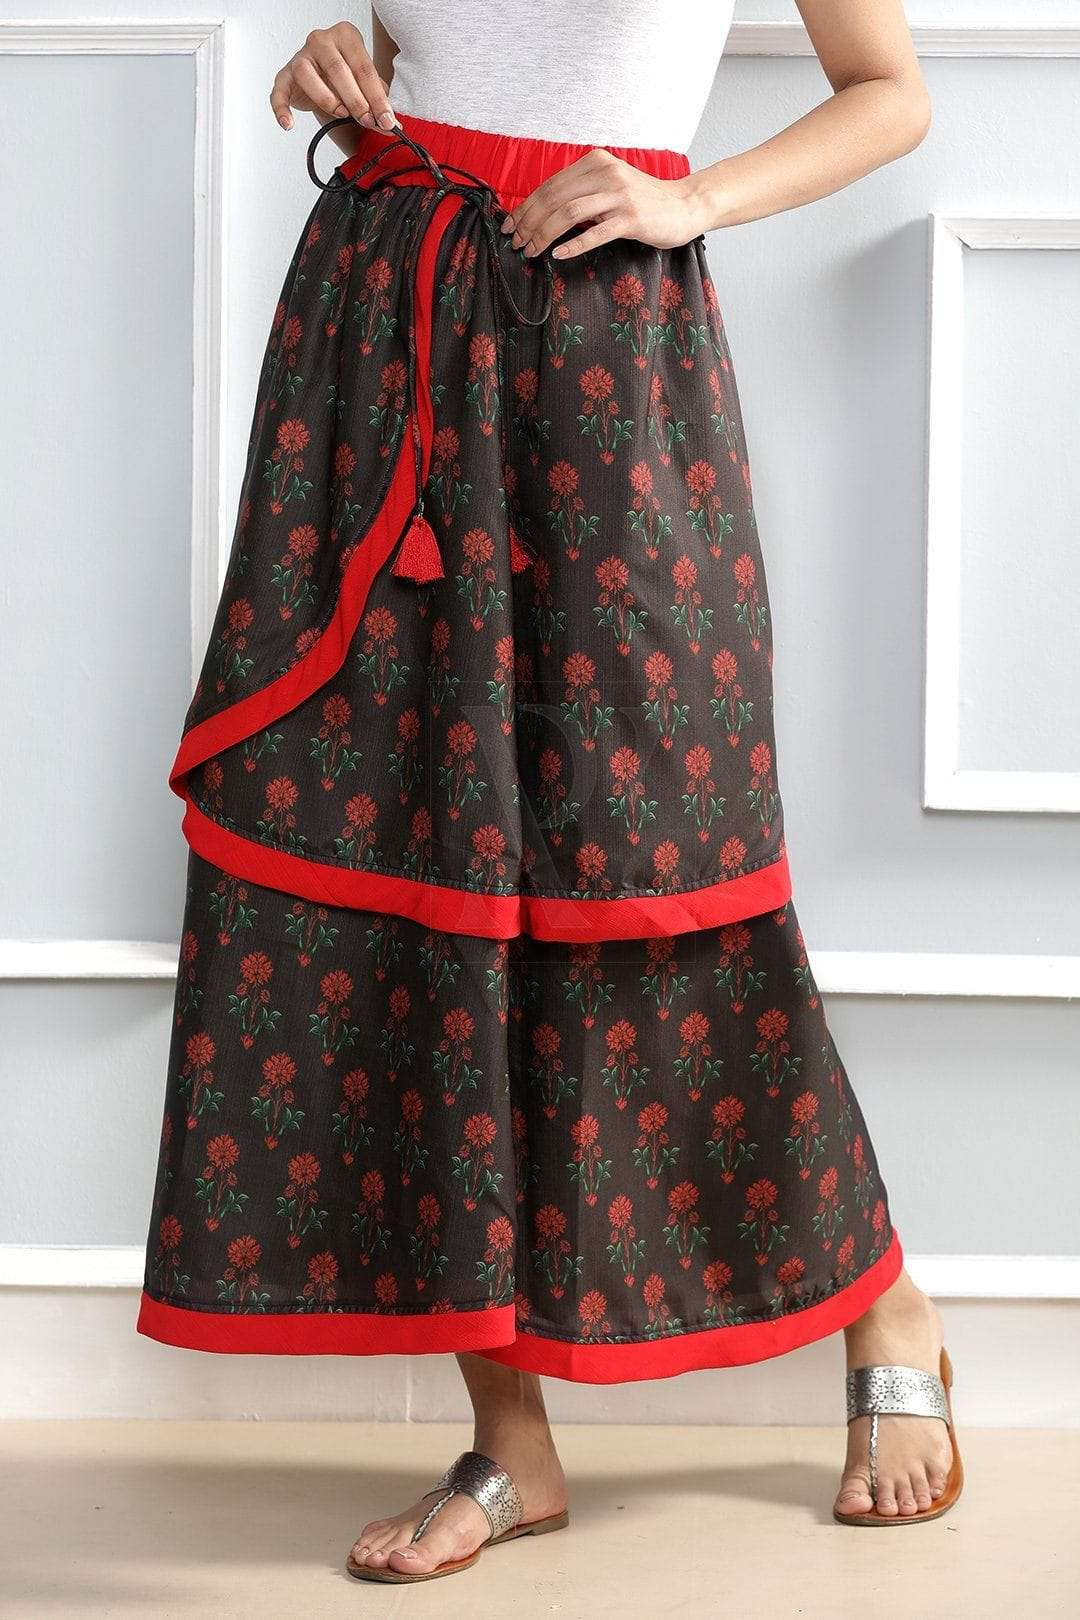 7079262c12d Floral Print Layered Skirt - Roopkatha - A Story of Art